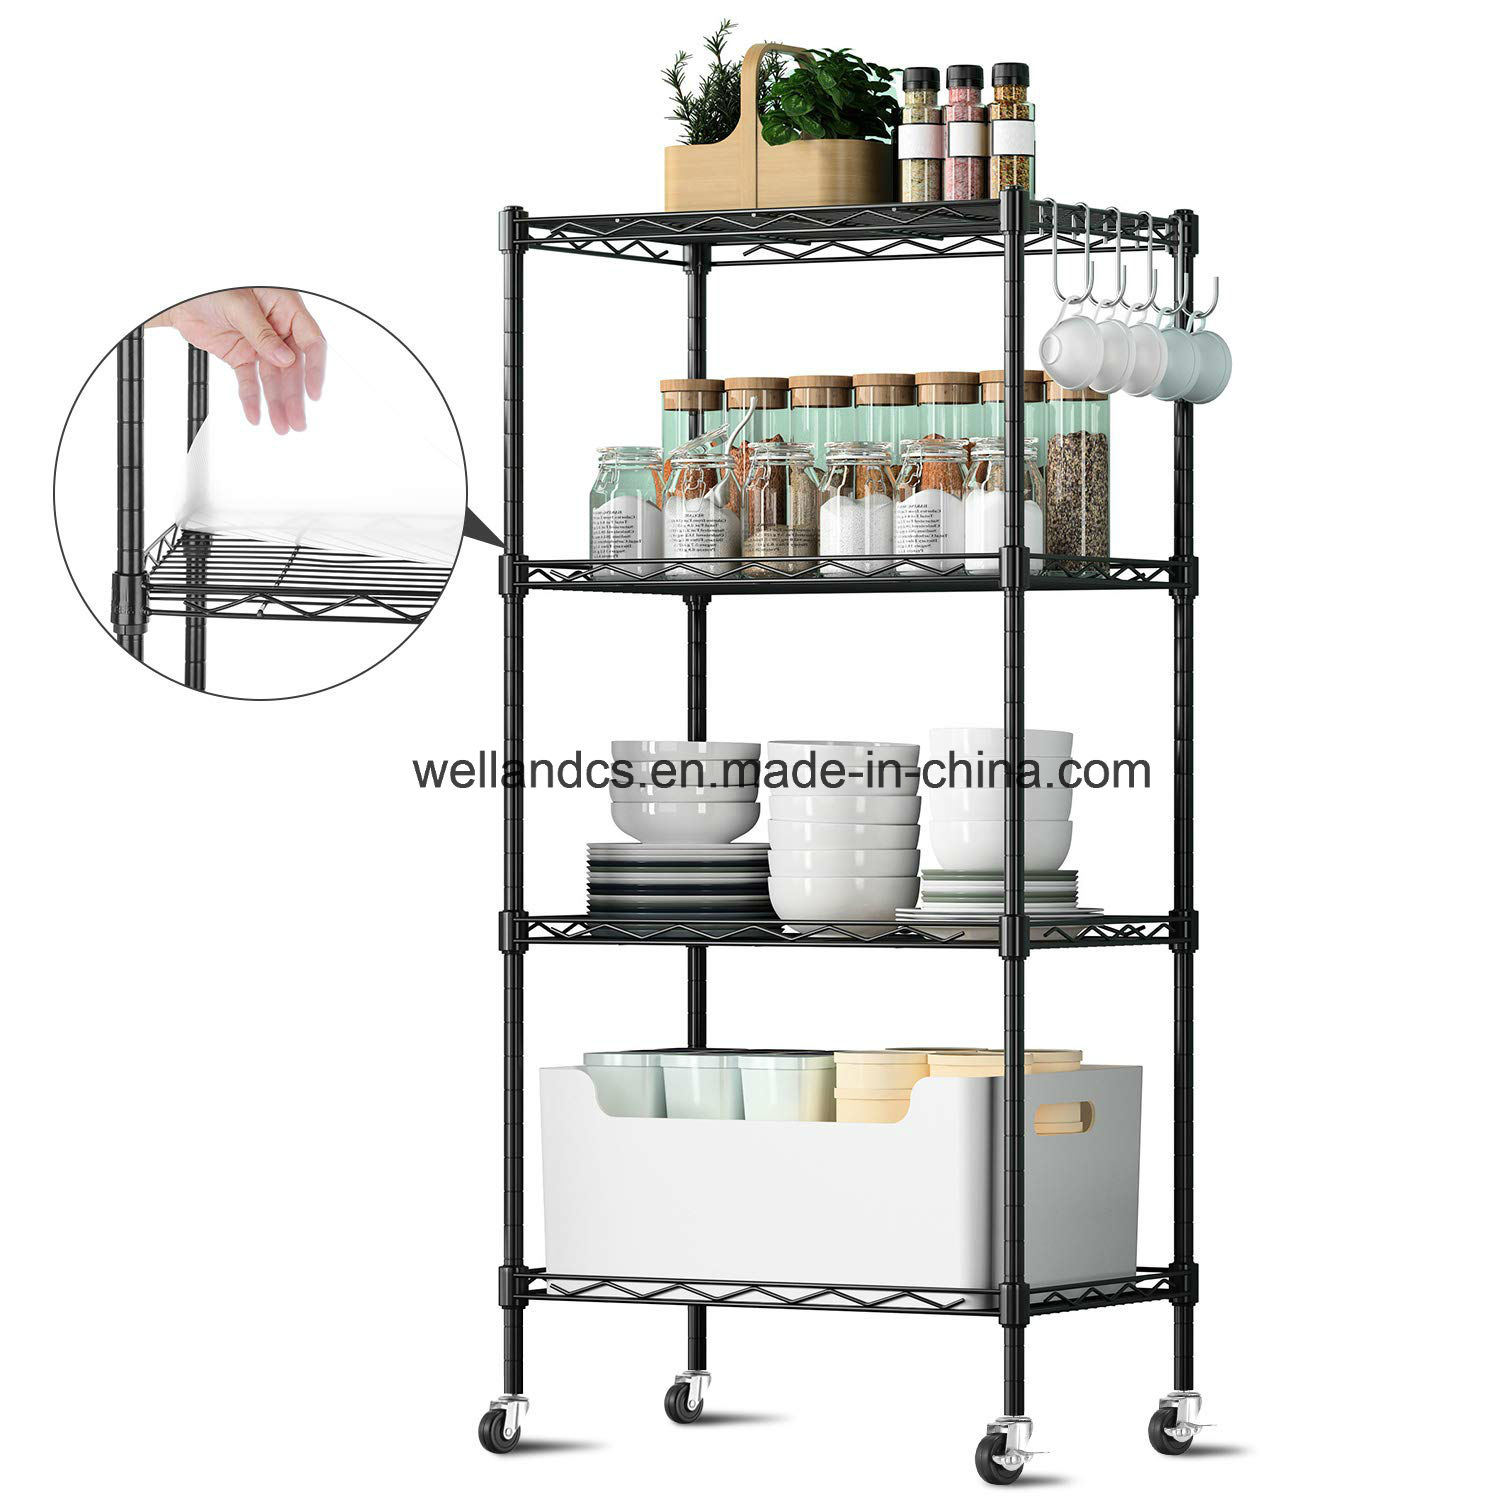 Hot Item 4 Tiers Wire Shelving Unit Metal Storage Rack Durable Organizer Perfect For Pantry Kitchen